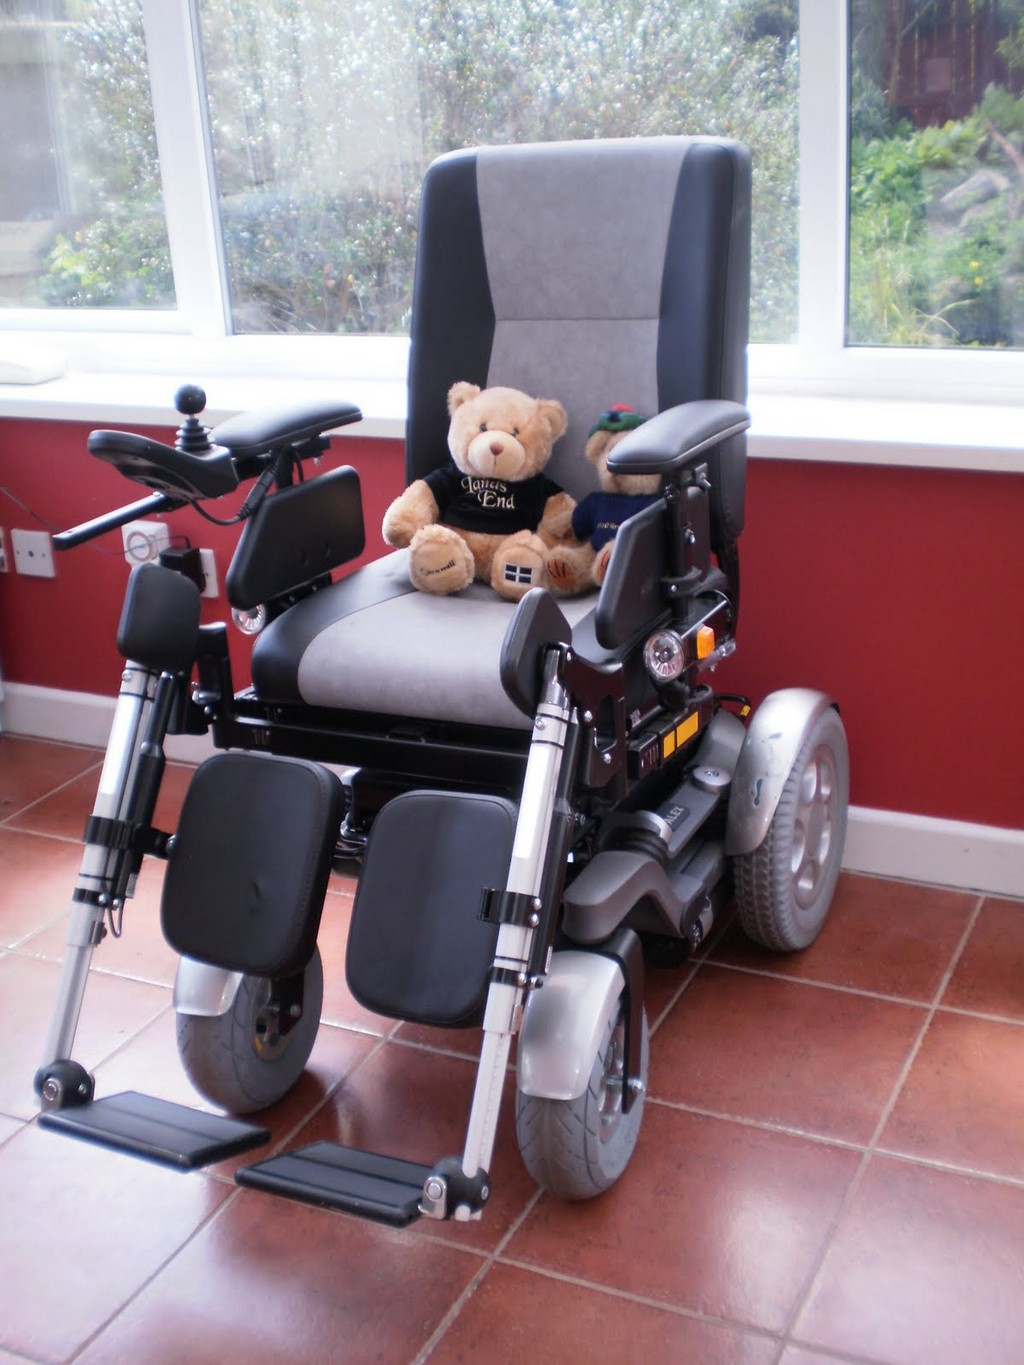 electric wheel chair lifts, benefits of electric wheelchairs, cheap electric wheel chair cover, bruno electric wheelchair buy